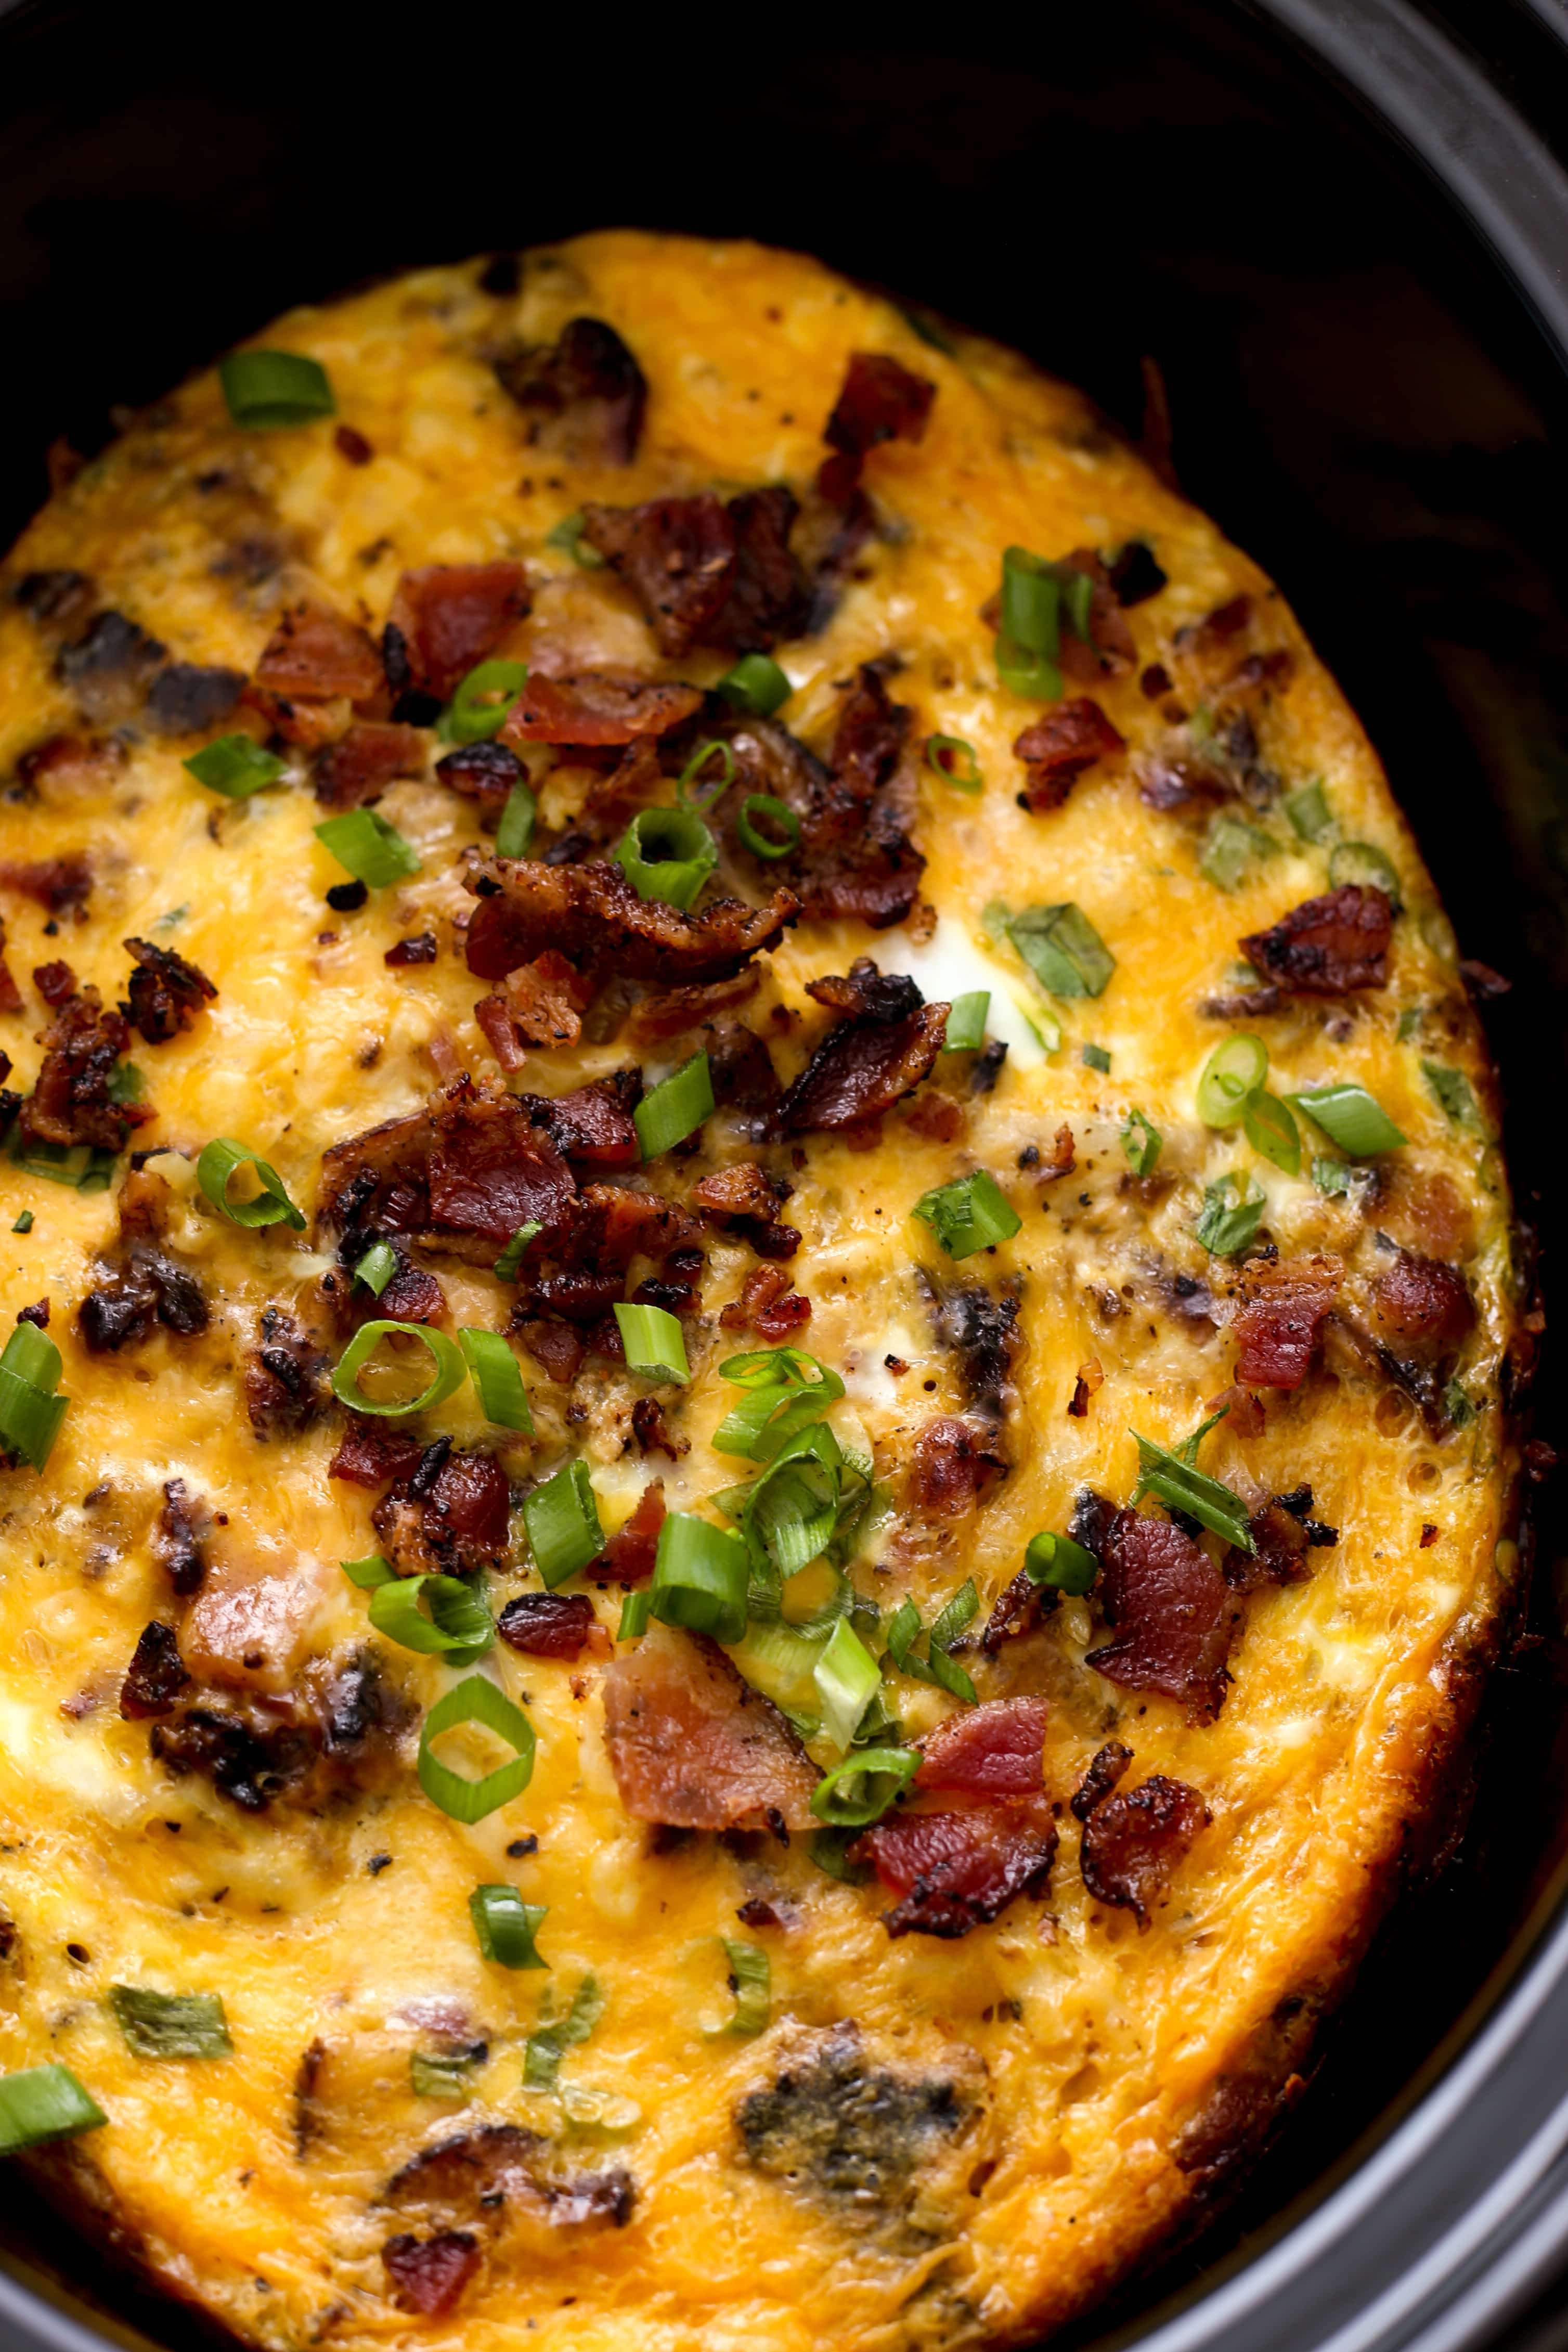 With Video Tutorial! ~ Loaded with bountiful veggies, this hearty egg bake is deliciously satisfying, without weighing you down! Unlike many recipes, this egg casserole is made without bread.